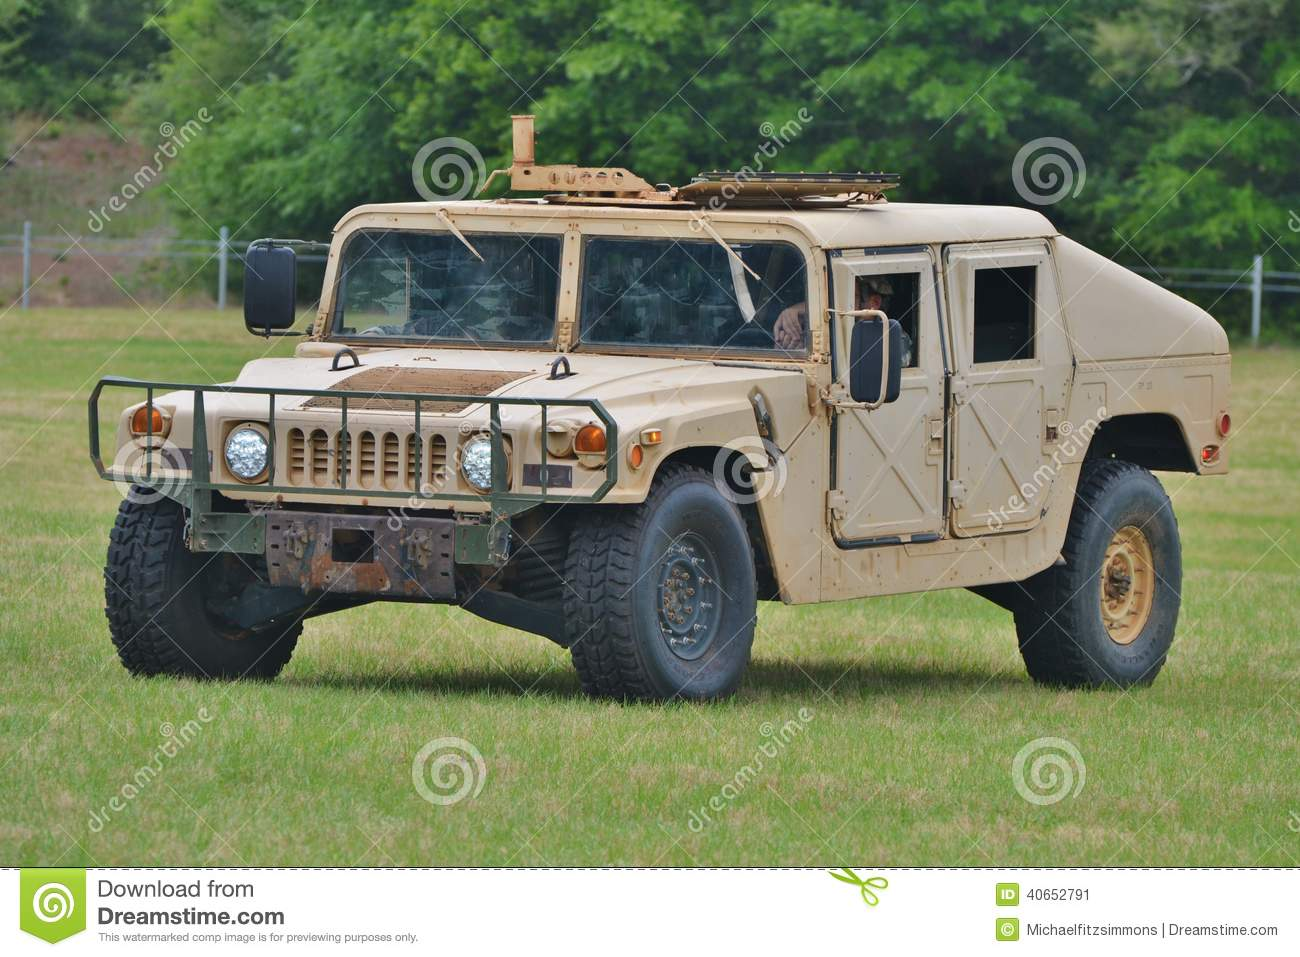 humvee militaire hummer hmmwv image stock image du transport camion 40652791. Black Bedroom Furniture Sets. Home Design Ideas